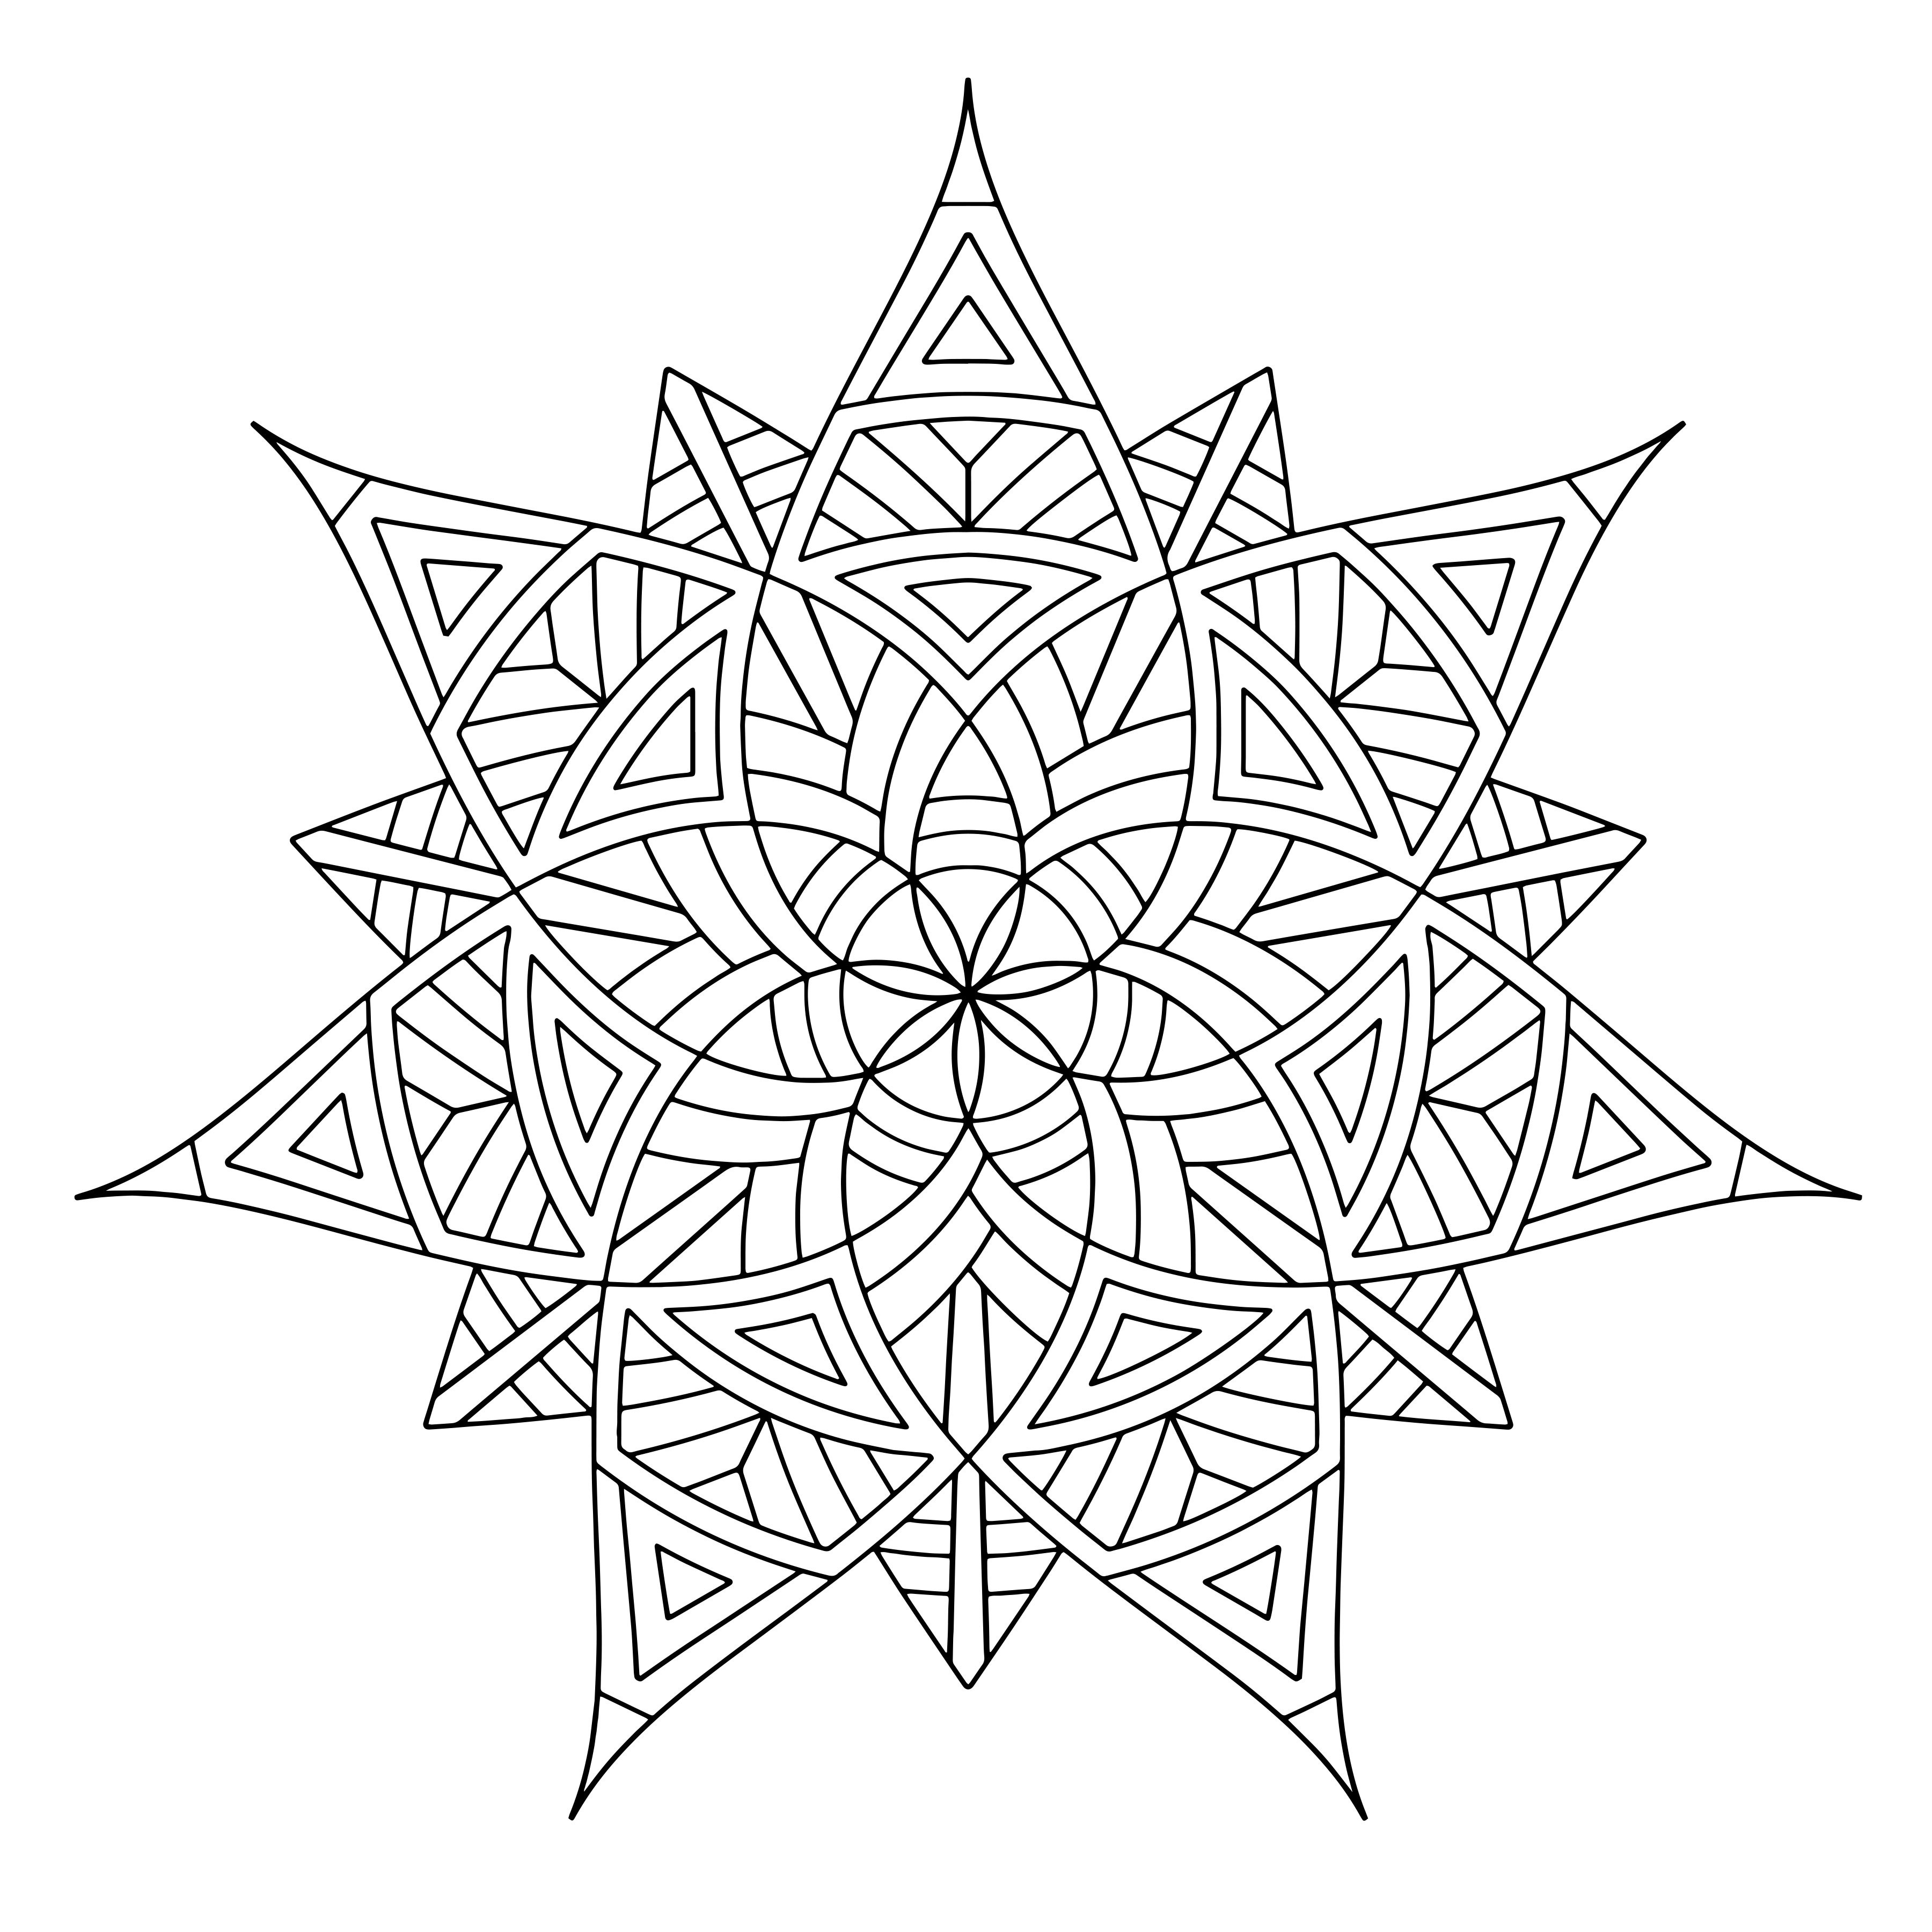 Best ideas about Adult Printable Coloring Pages . Save or Pin Free Printable Geometric Coloring Pages for Adults Now.